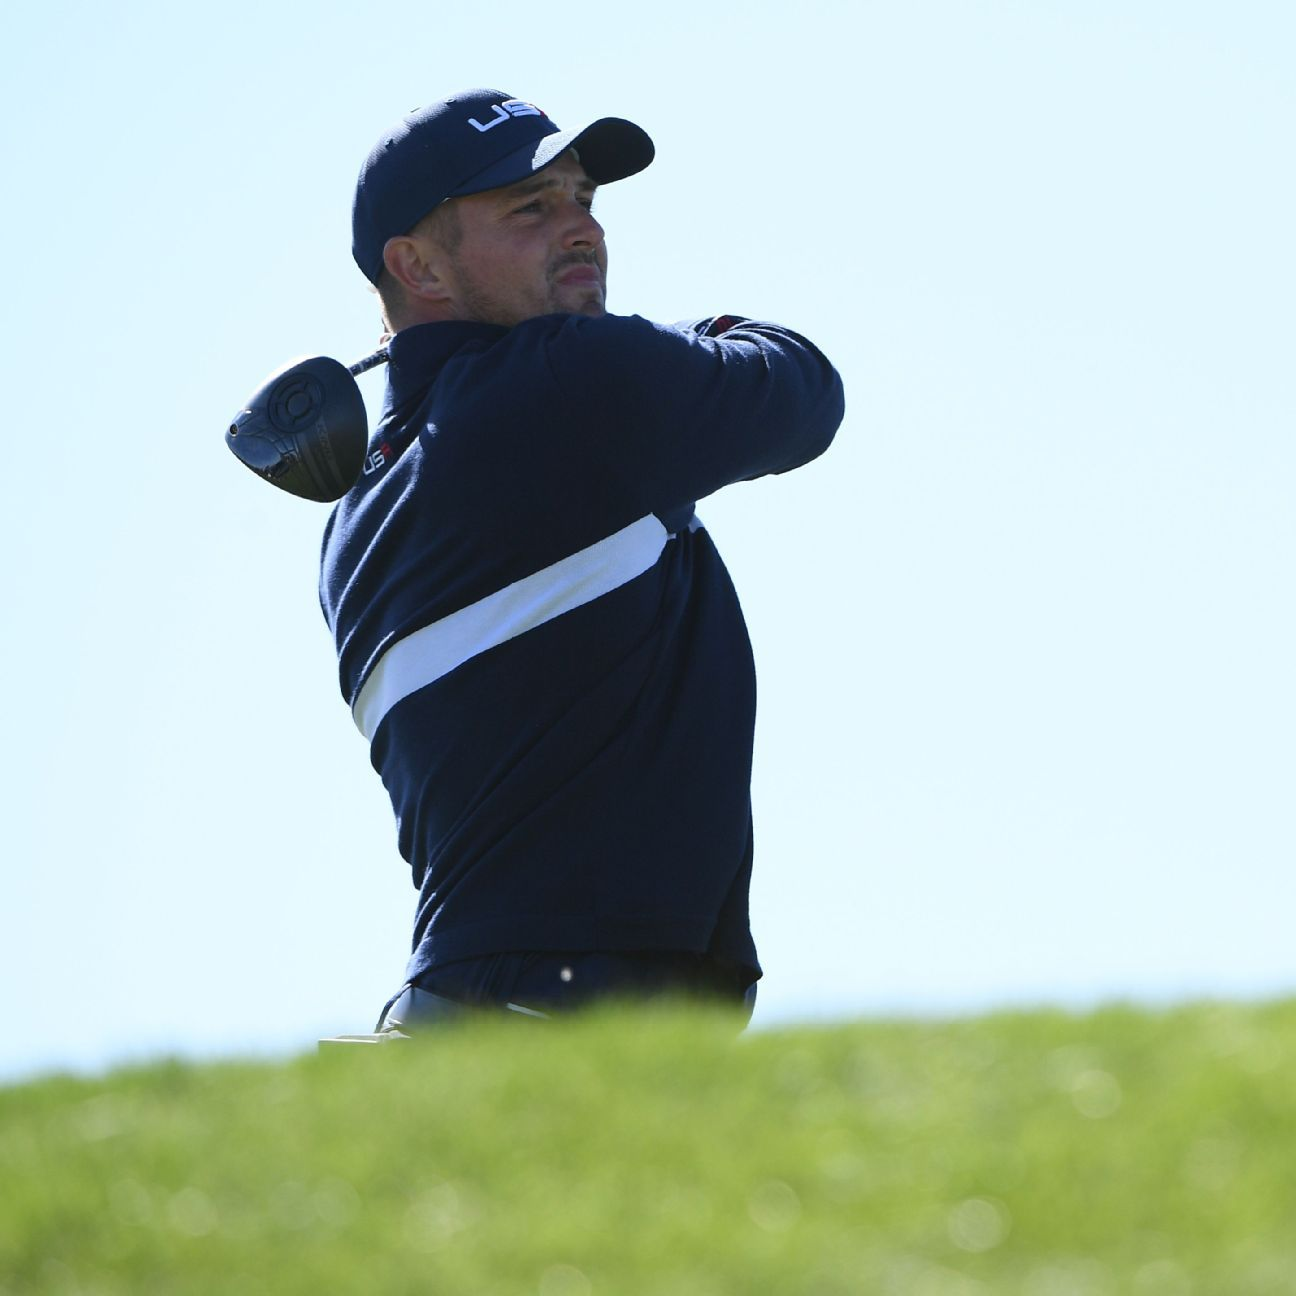 Going the distance? Bryson makes long drive cut